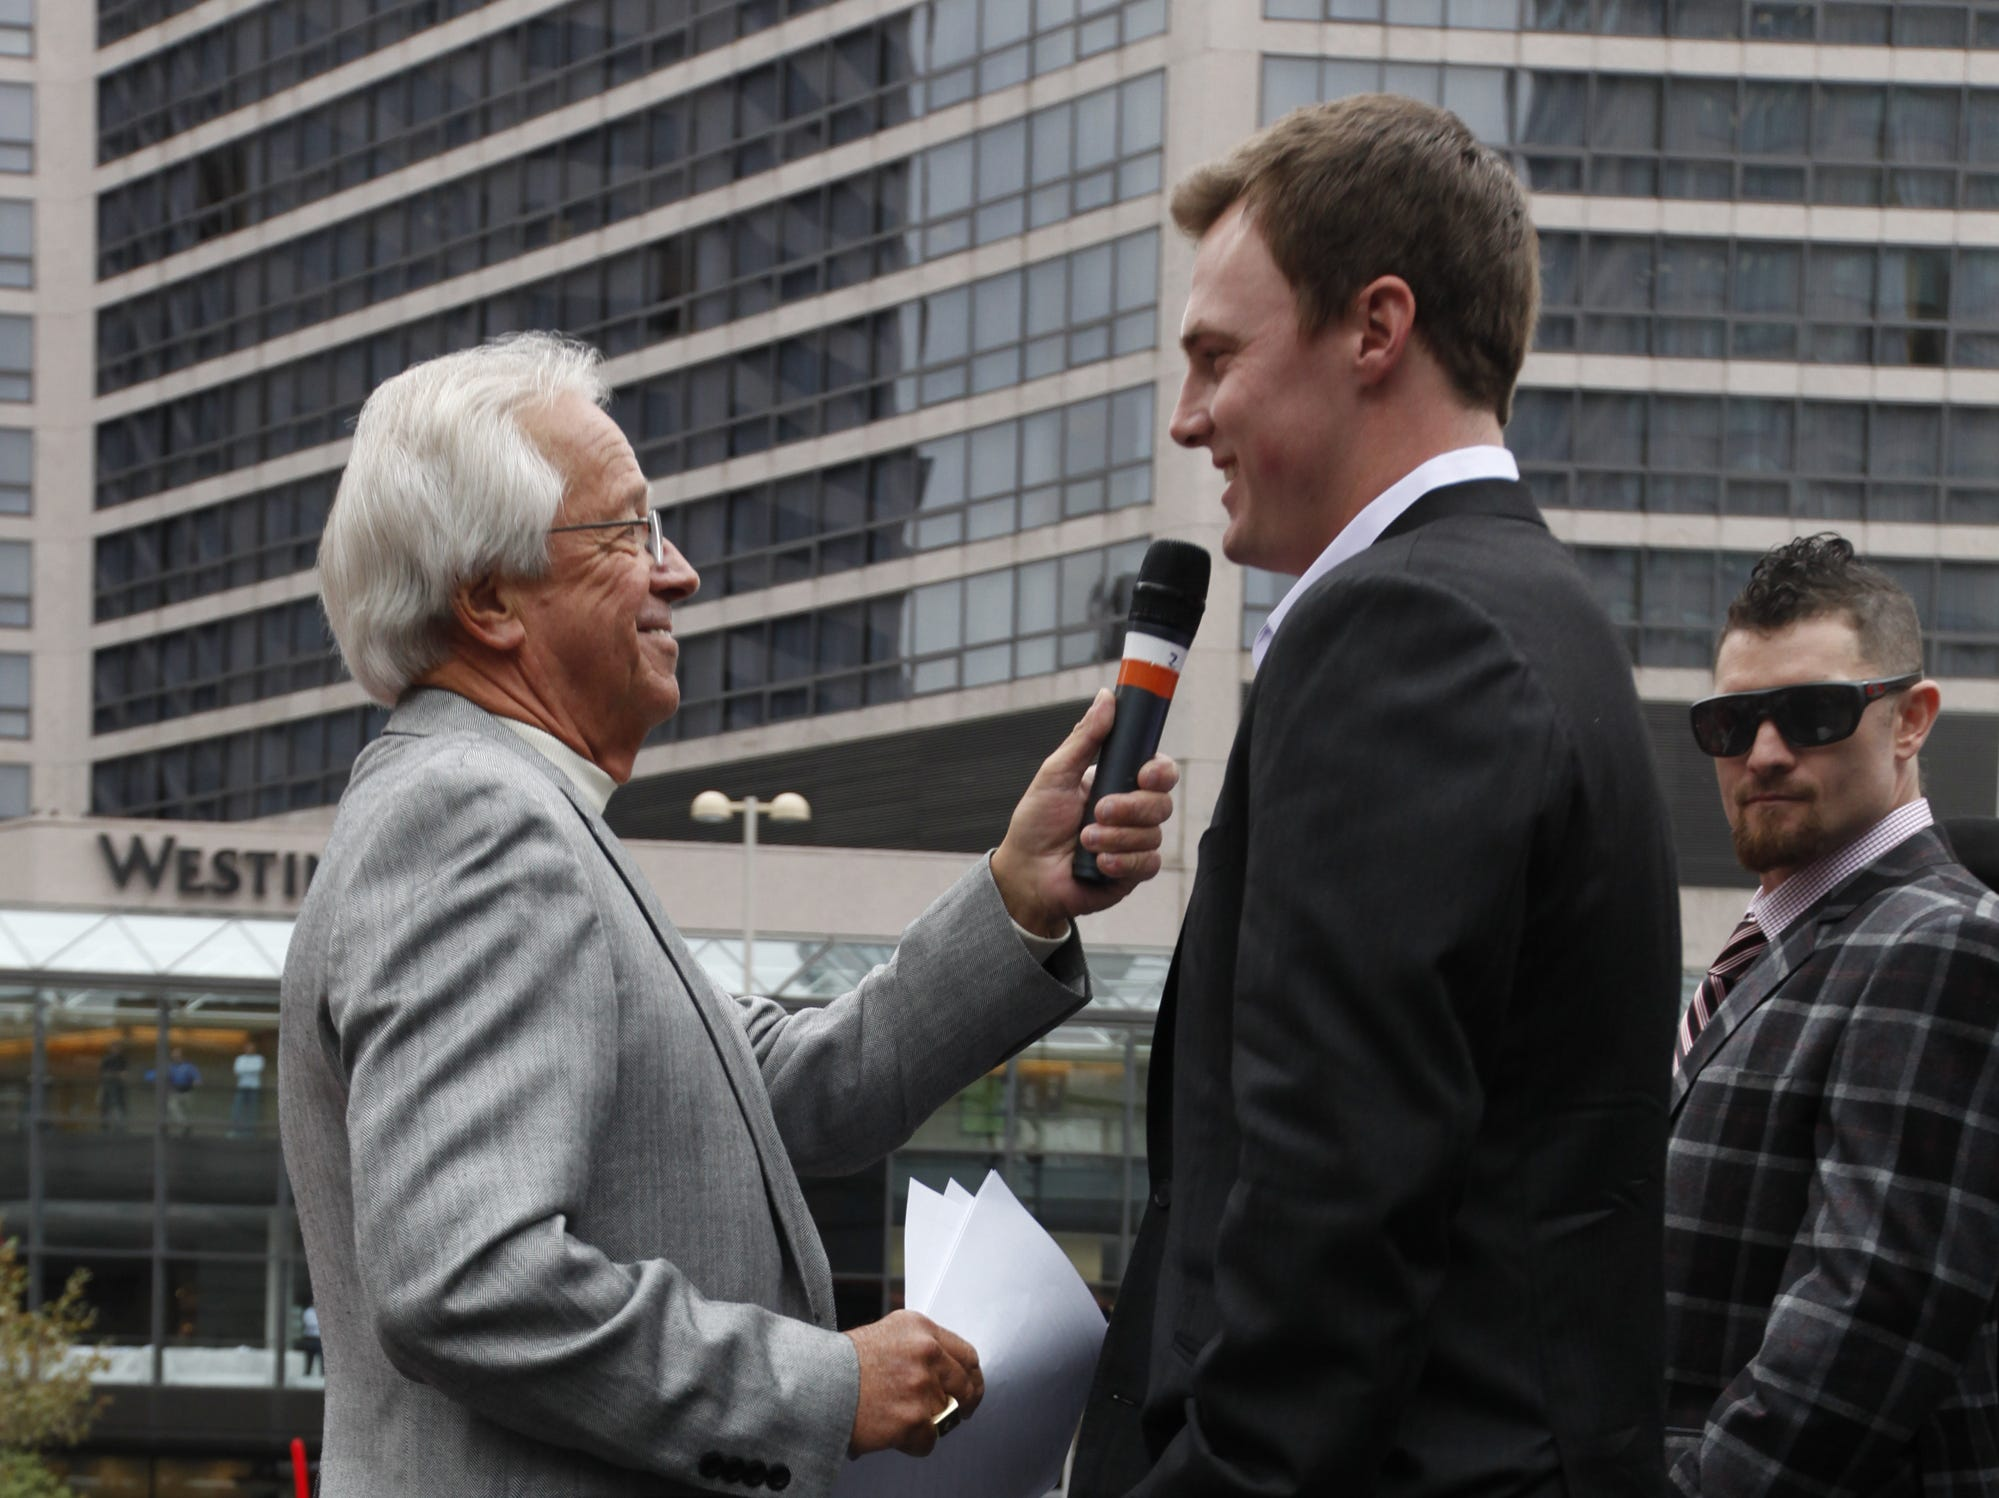 MONDAY OCTOBER 4, 2010  REDS  LOCAL Reds radio broadcaster and Hall of Famer Marty Brennaman, left,  talks with National League Player of the Week Jay Bruce. The National League Central Division Champion Cincinnati Reds held a pep rally of sorts on FOuntain Square before departing for Philadelphia, Pa..  The Reds will meet the Phillies in a best of five game series starting Wednesday afternoon.  The Enquirer/Michael E. Keating